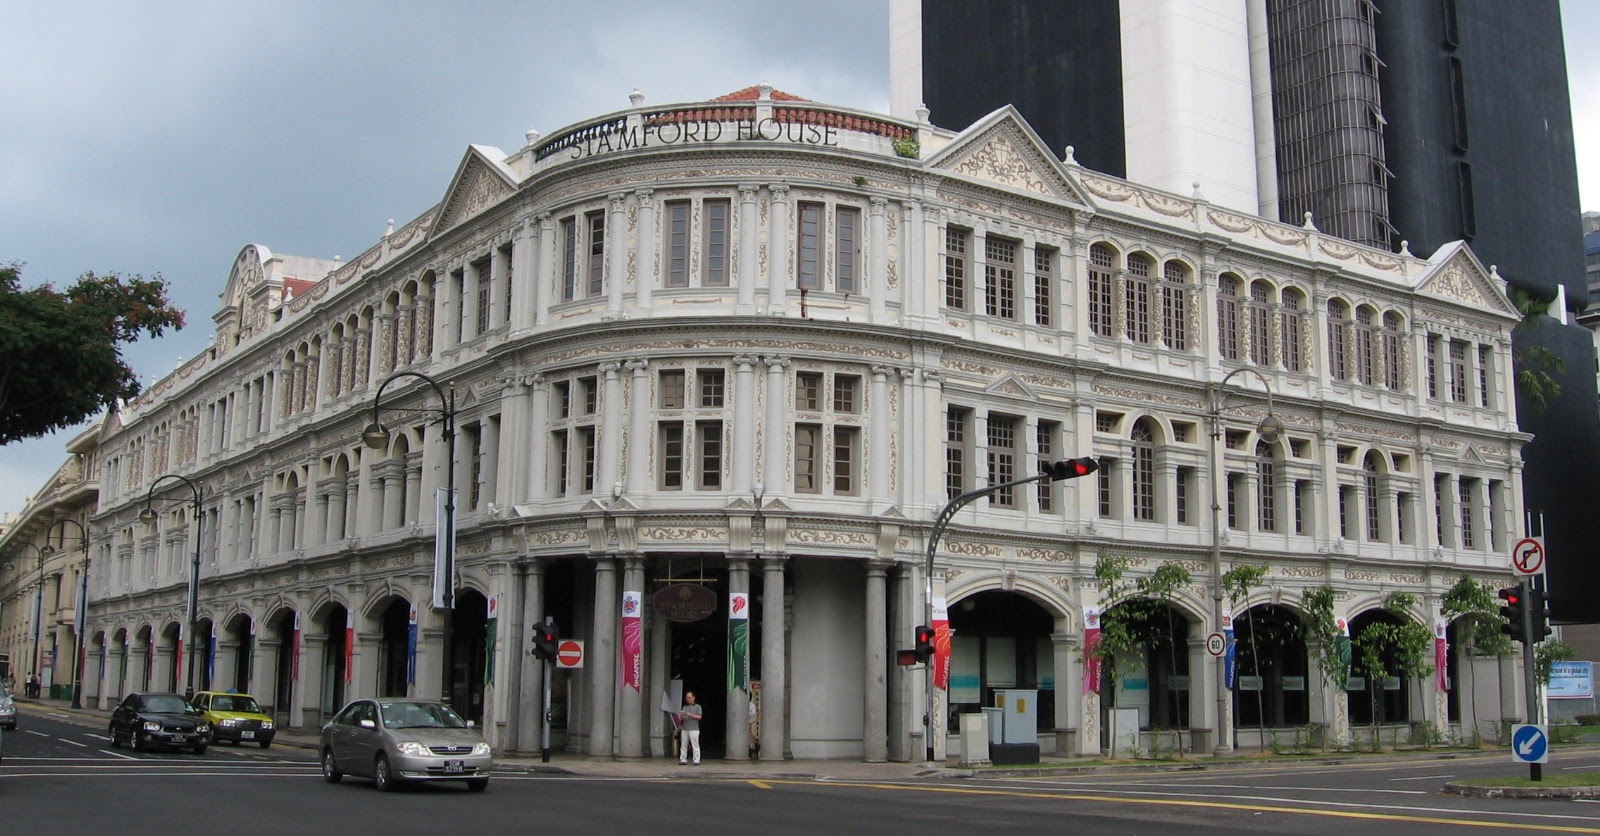 Stamford House Singapore Map,Map of Stamford House Singapore,Tourist Attractions in Singapore,Things to do in Singapore,Stamford House Singapore accommodation destinations attractions hotels map reviews photos pictures